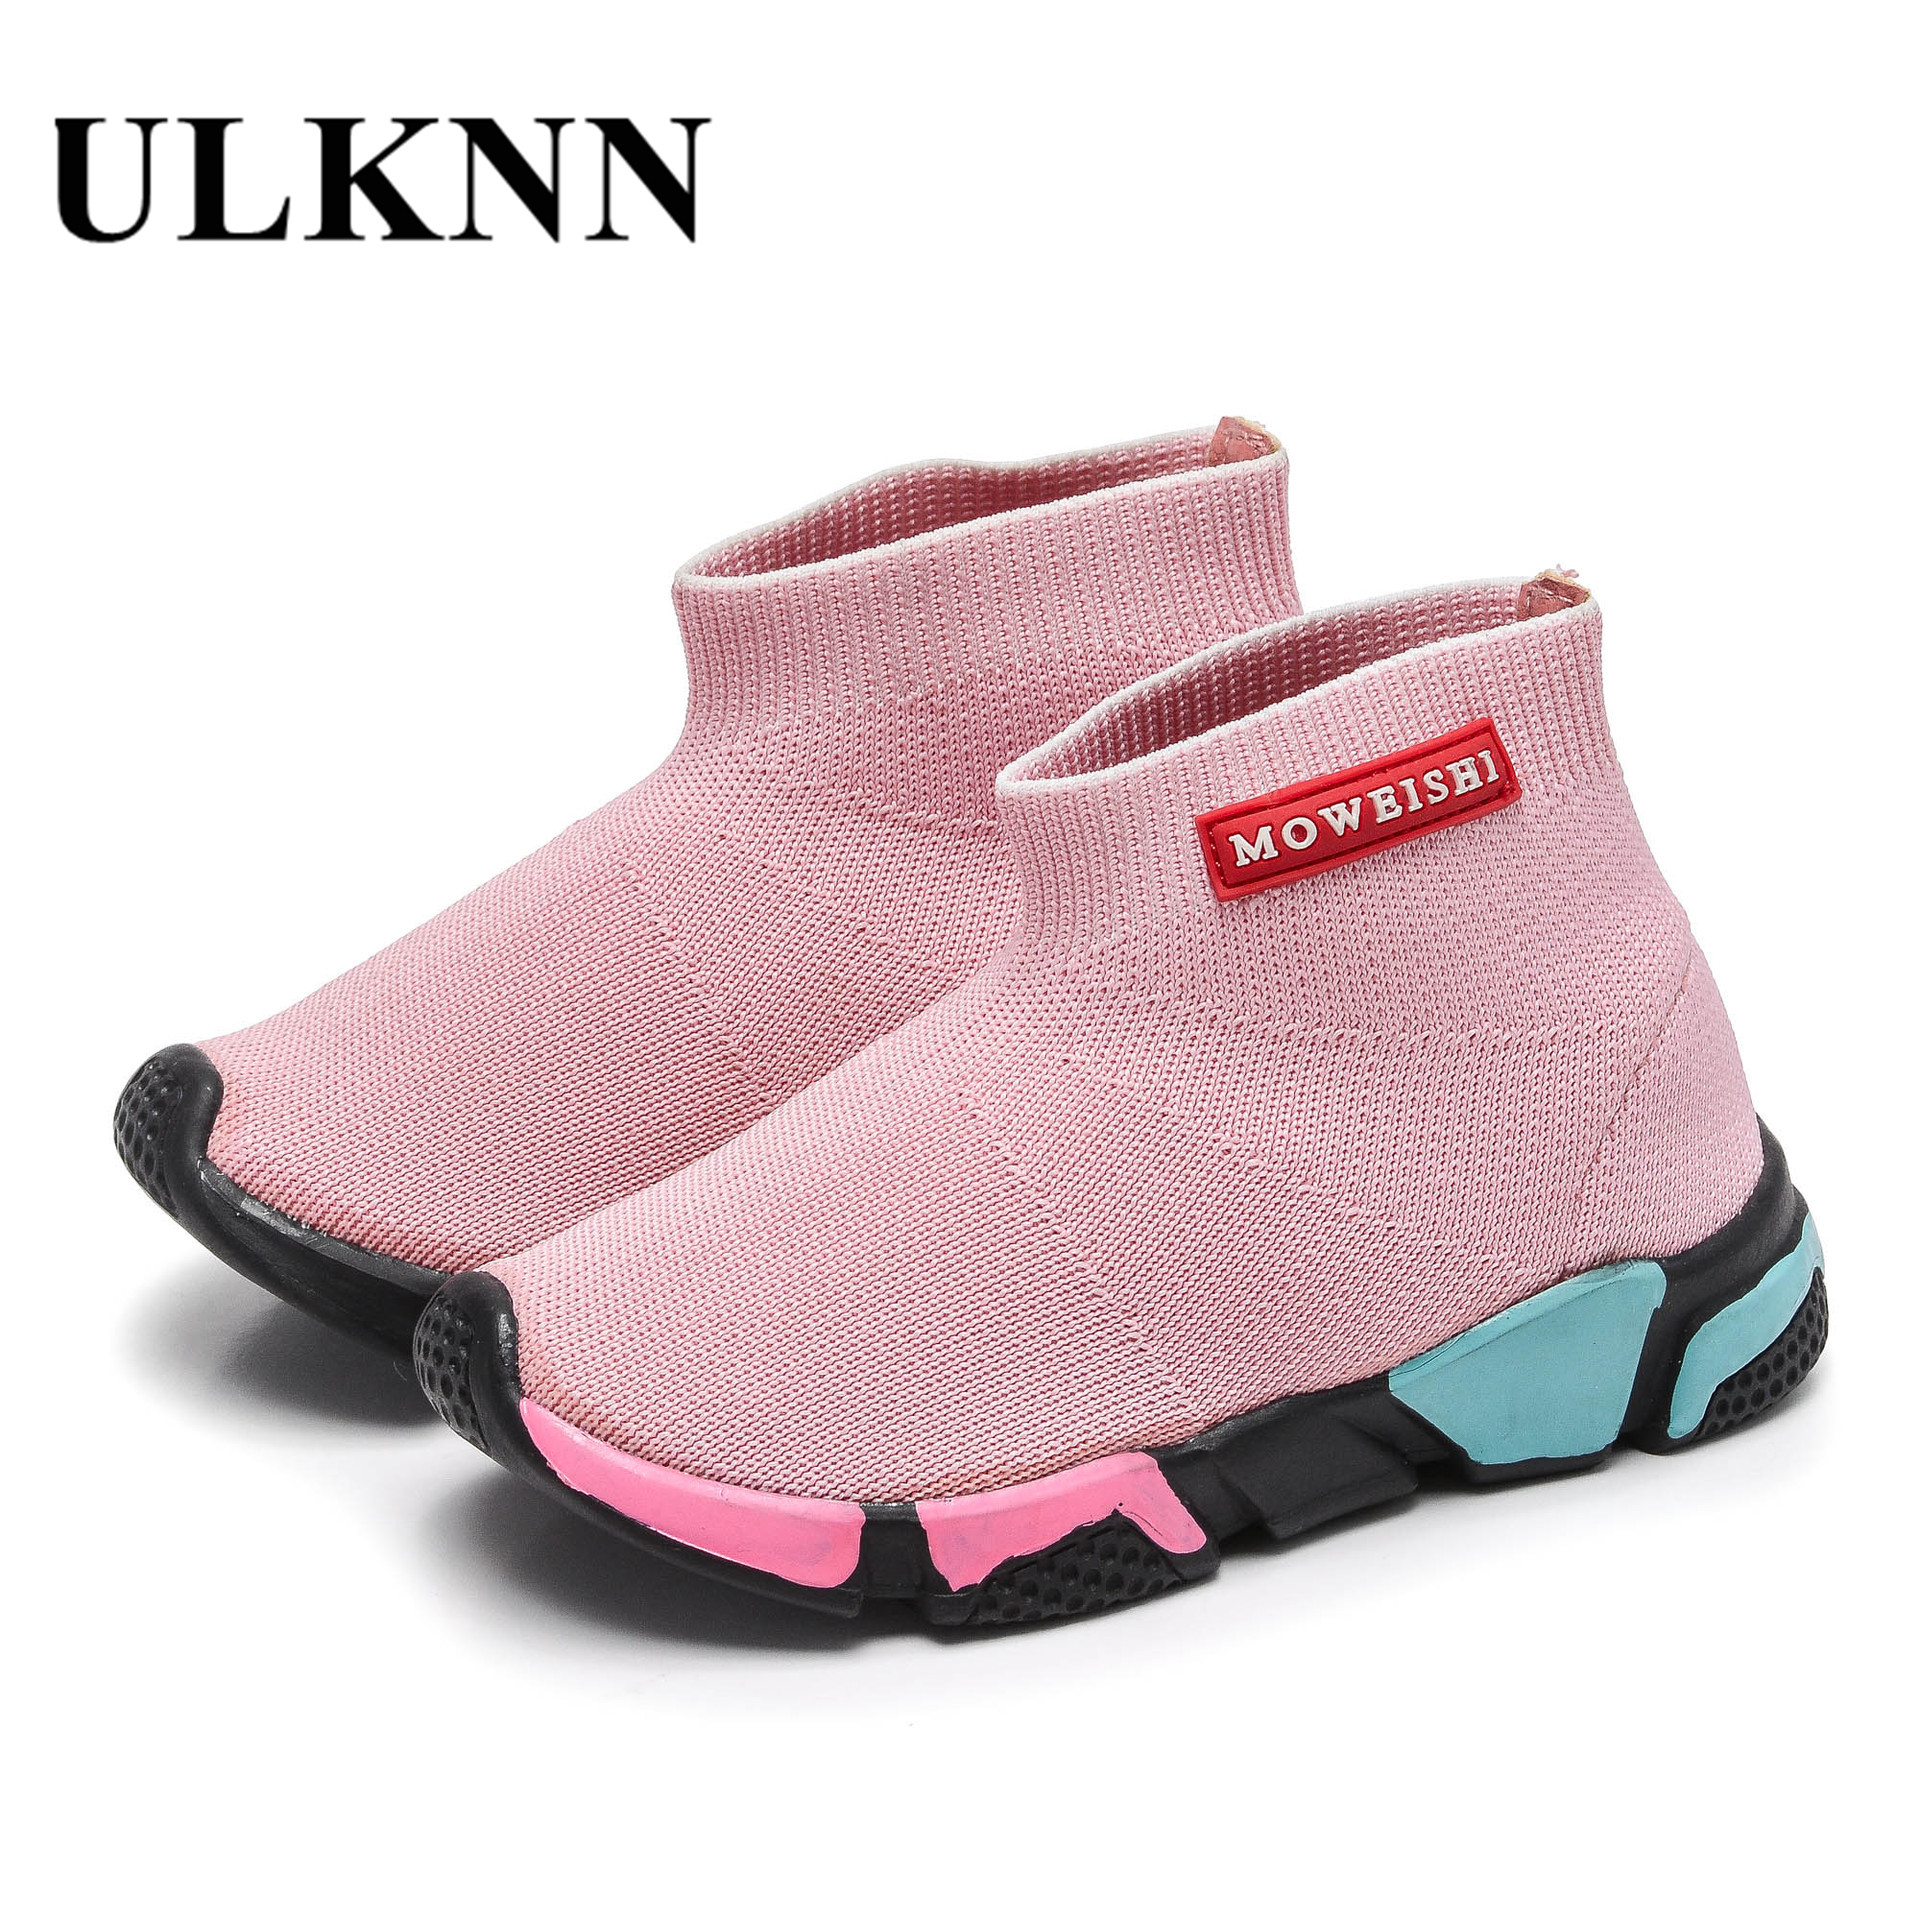 ULKNN New 2018 Shoes Kids High Top Sneakers Children Knitted Socks Sneakers Breathable Sport Girls Shoes Boys Tennis Casual Shoe